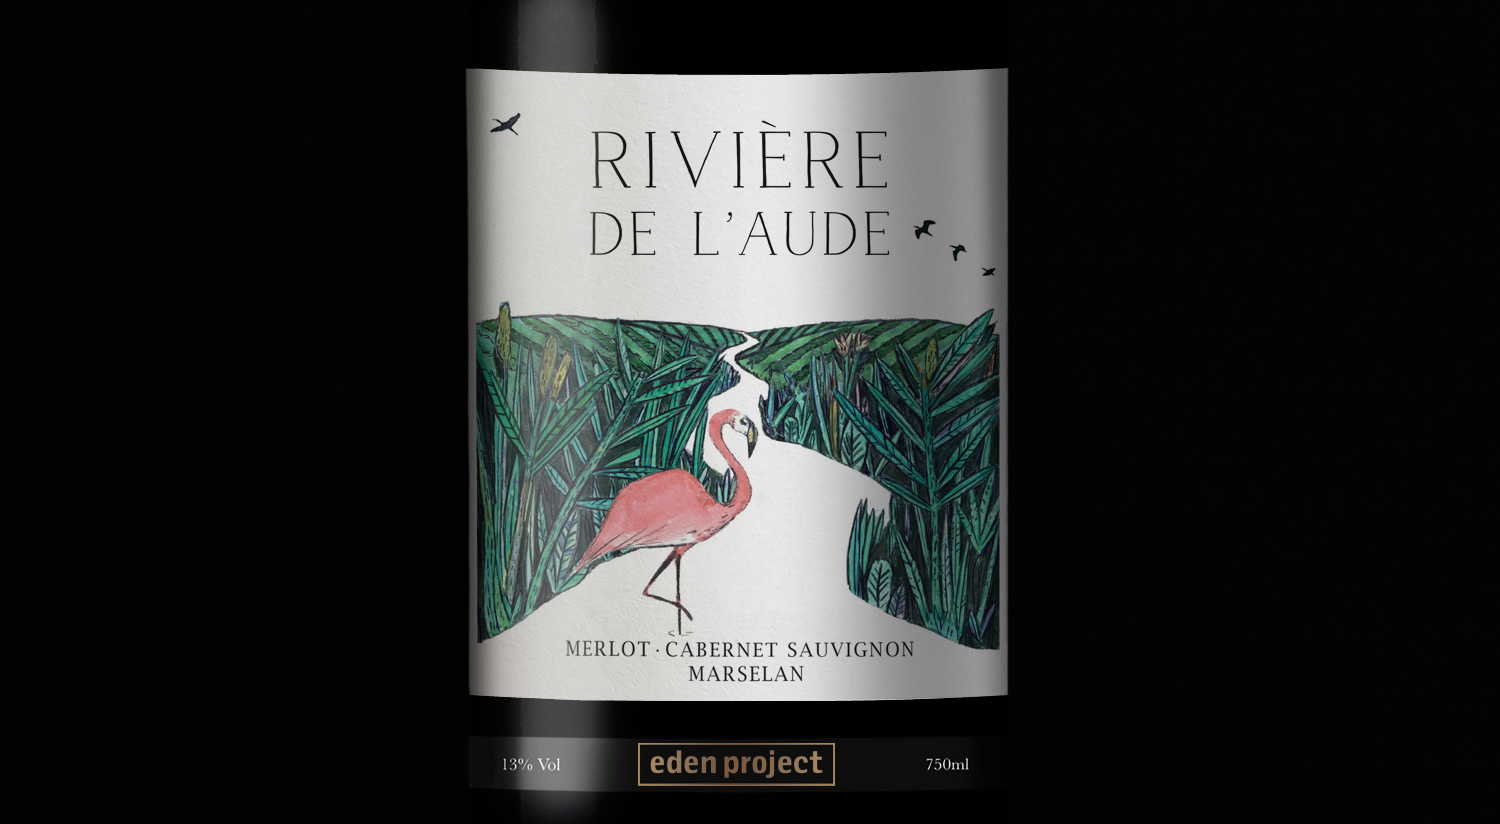 Riviere De L'aude Red wine label Eden project wine, red wine label design, illustration, flamingo, walter hicks, eden project